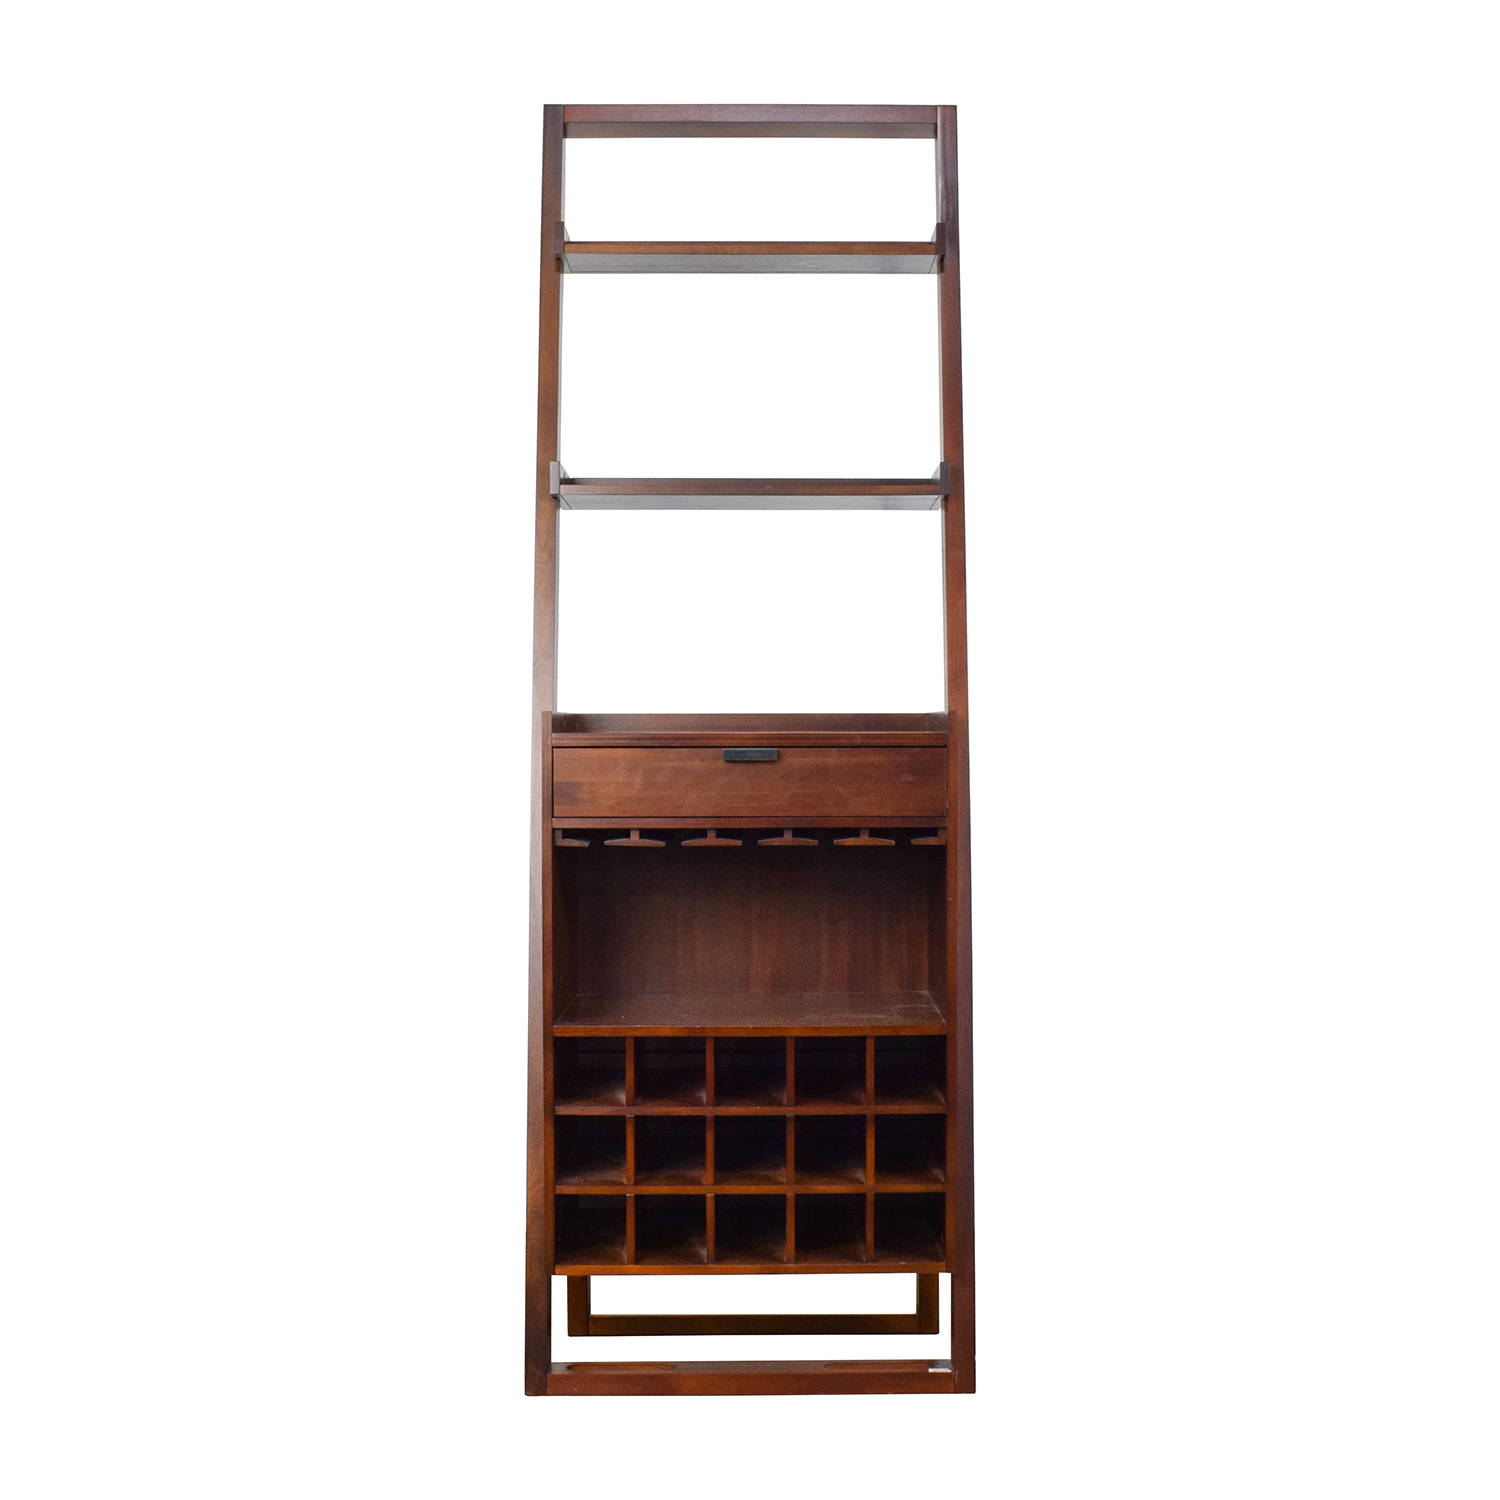 Charmant Crate U0026 Barrel Wood Leaning Bookshelf Bar Storage ...